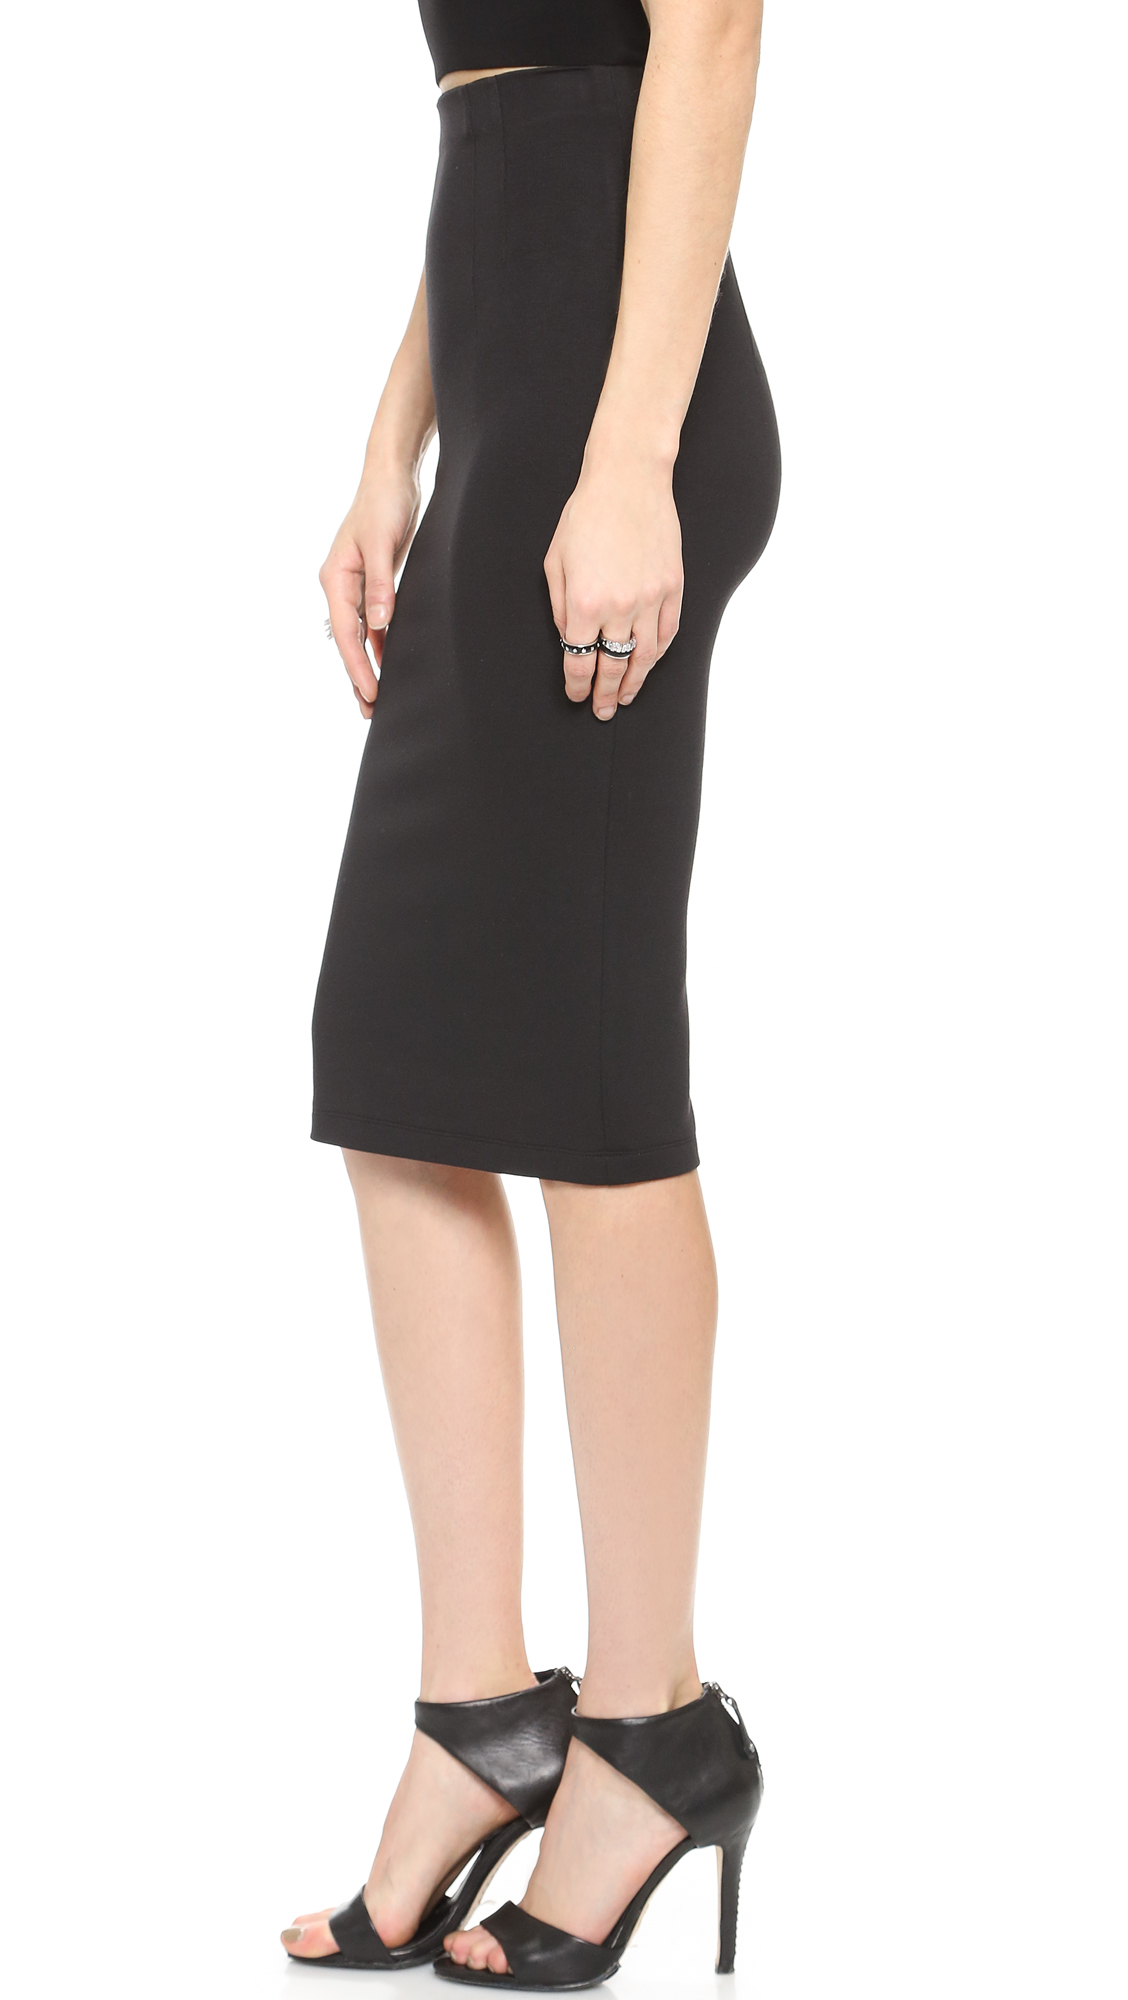 Alice   olivia Super High Waist Pencil Skirt - Black in Black | Lyst